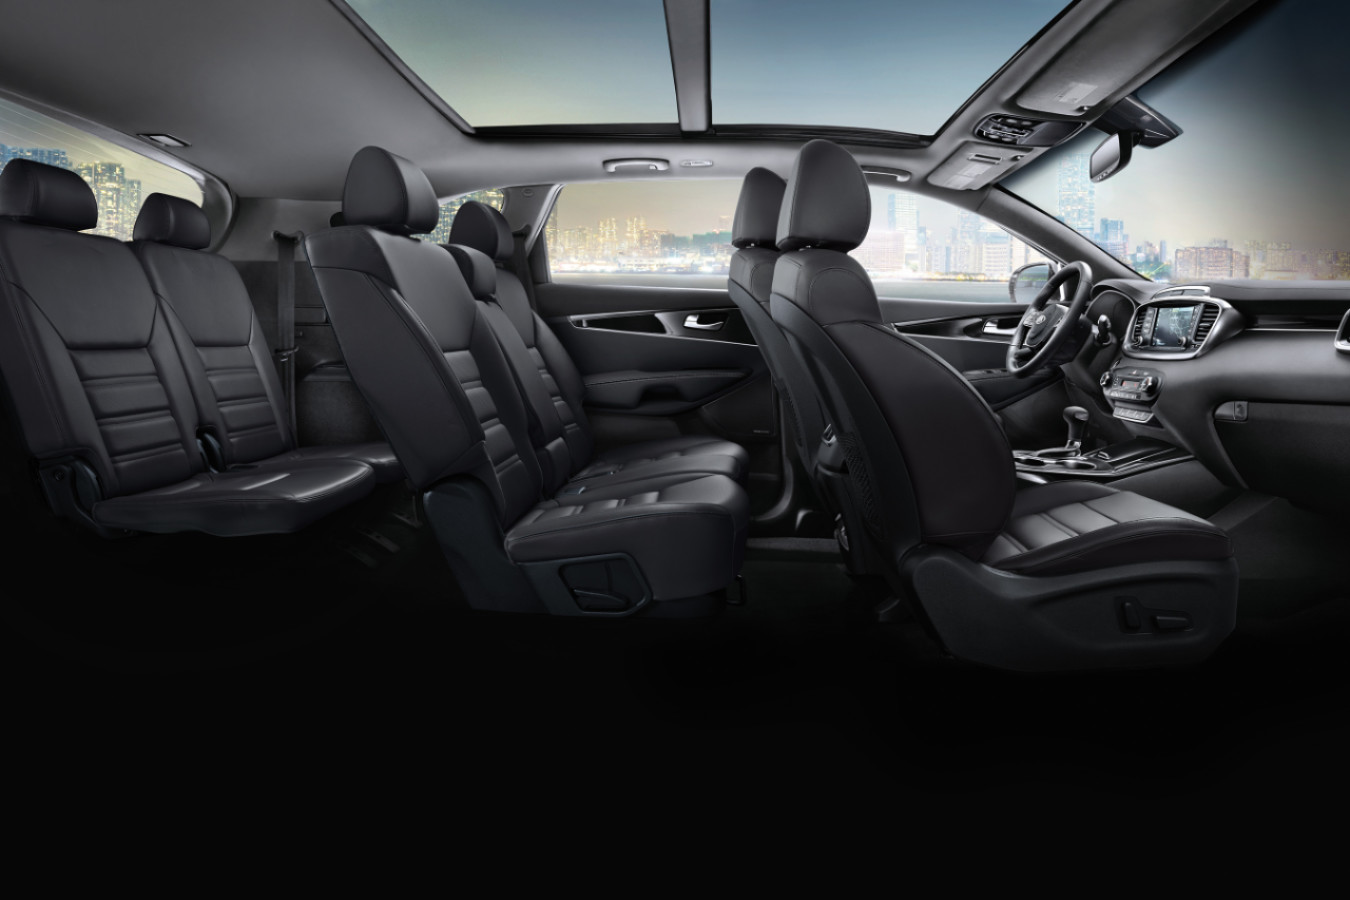 2020 Kia Sorento Interior Seating